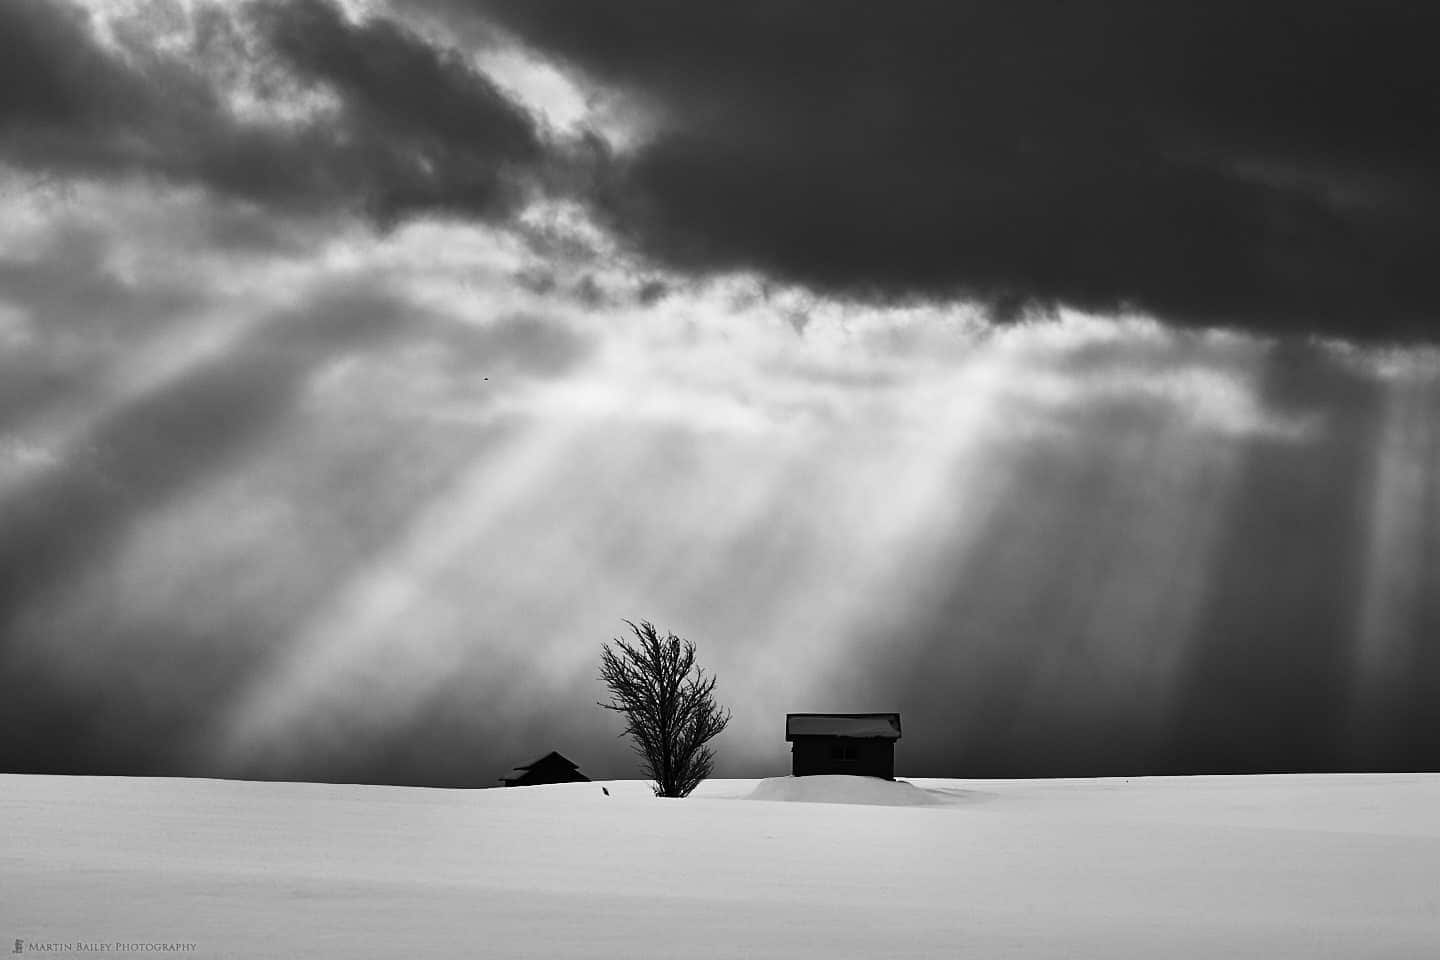 Huts and Tree in Crepuscular Rays